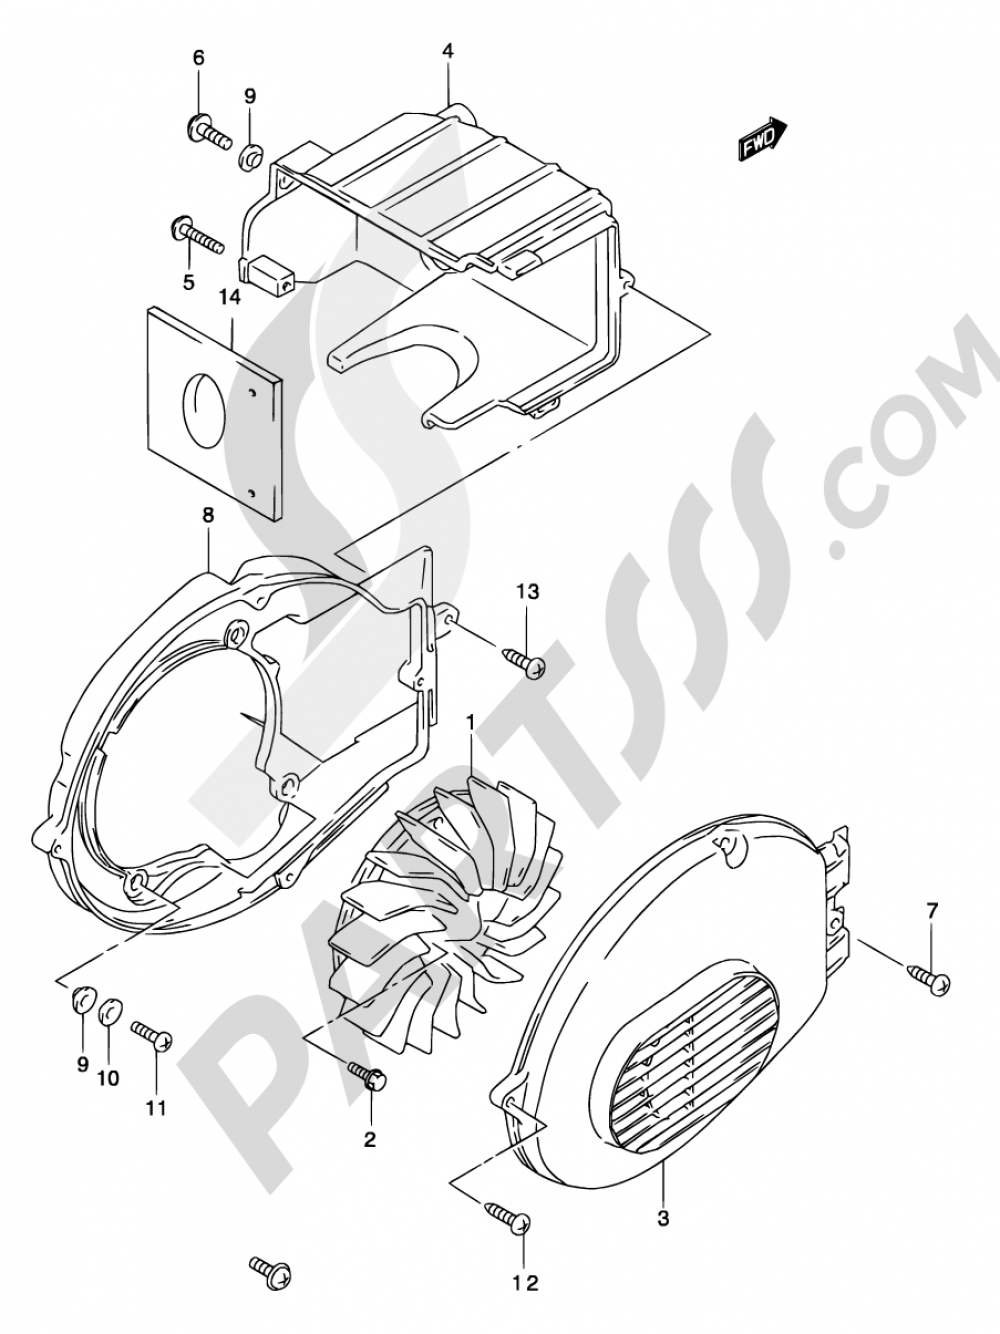 11 - COOLING FAN (MODEL AY50) Suzuki KATANA AY50S 2003